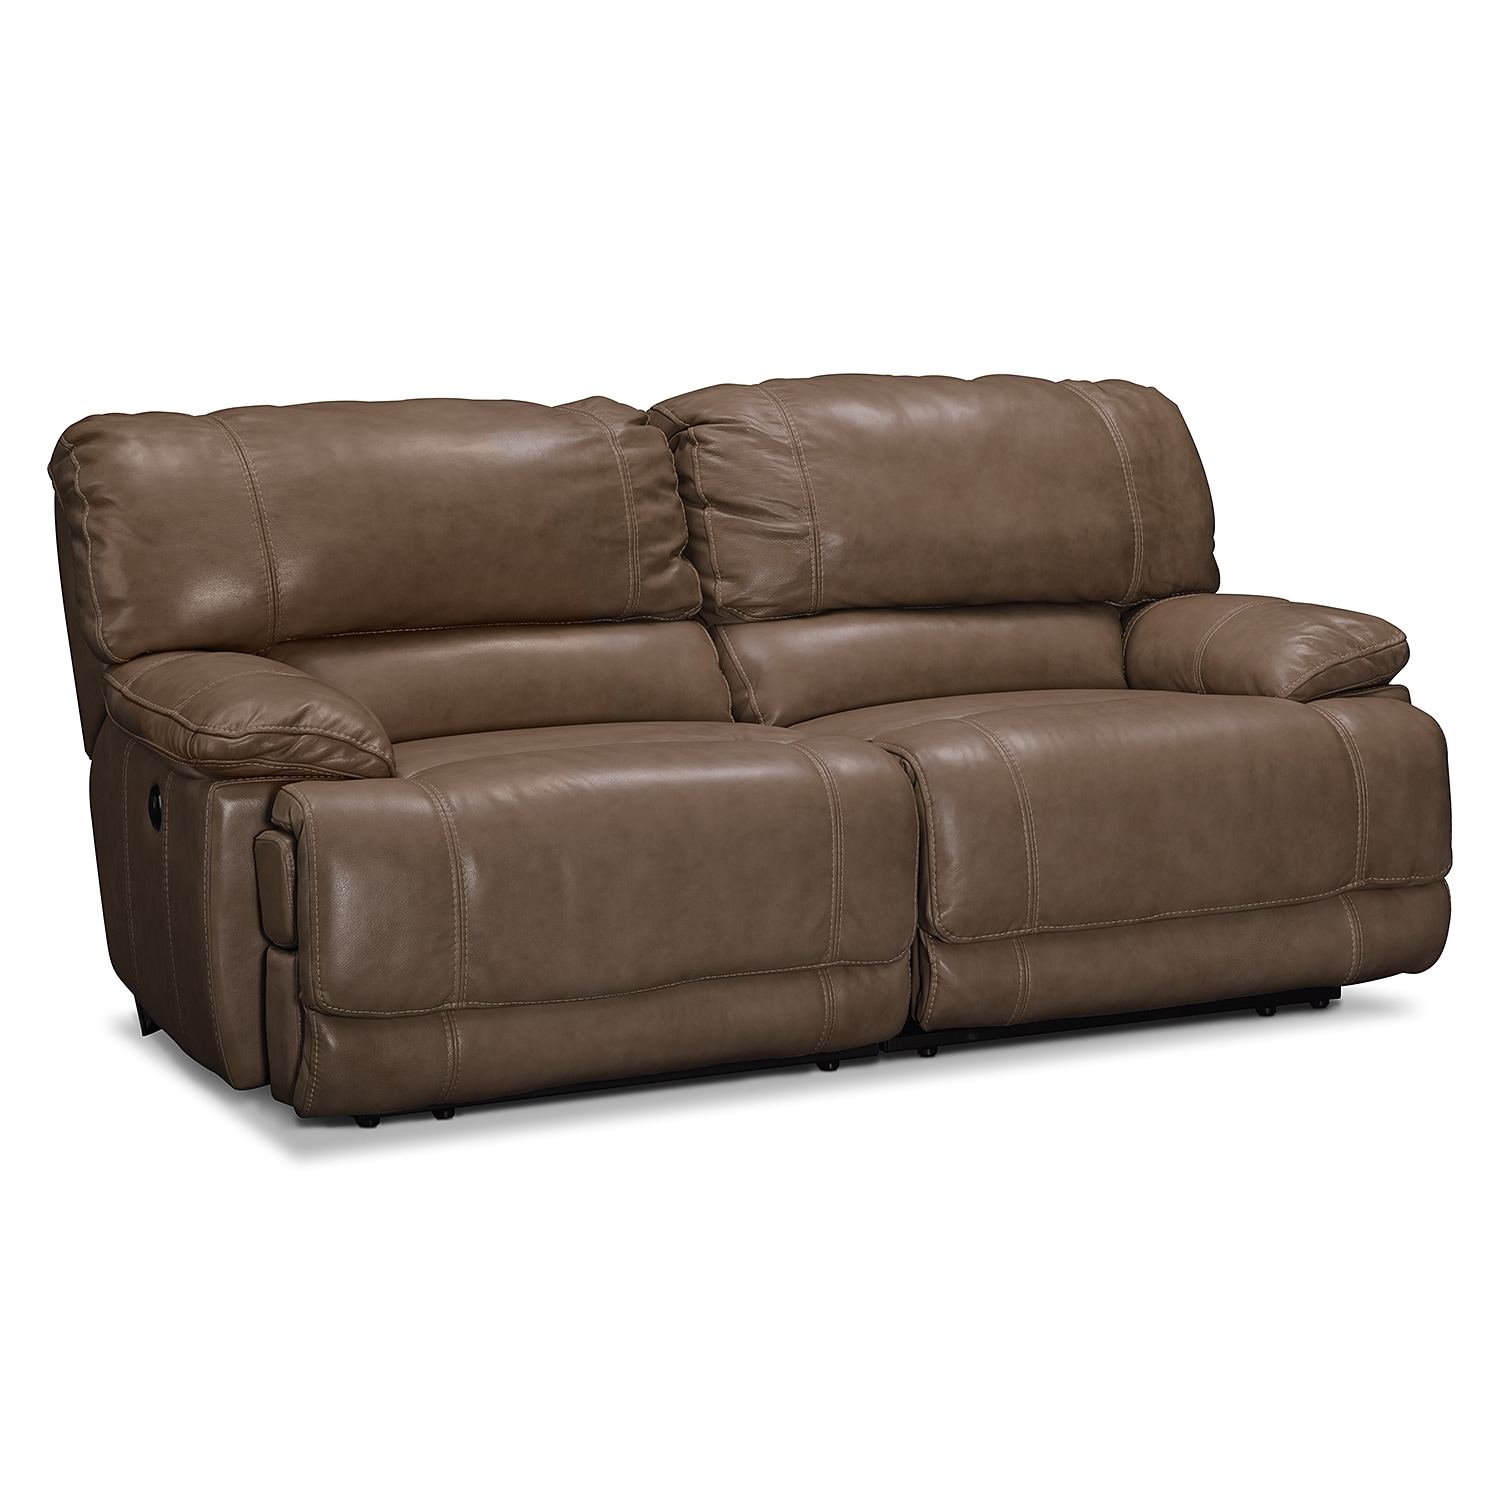 Value city furniture Leather reclining sofa loveseat